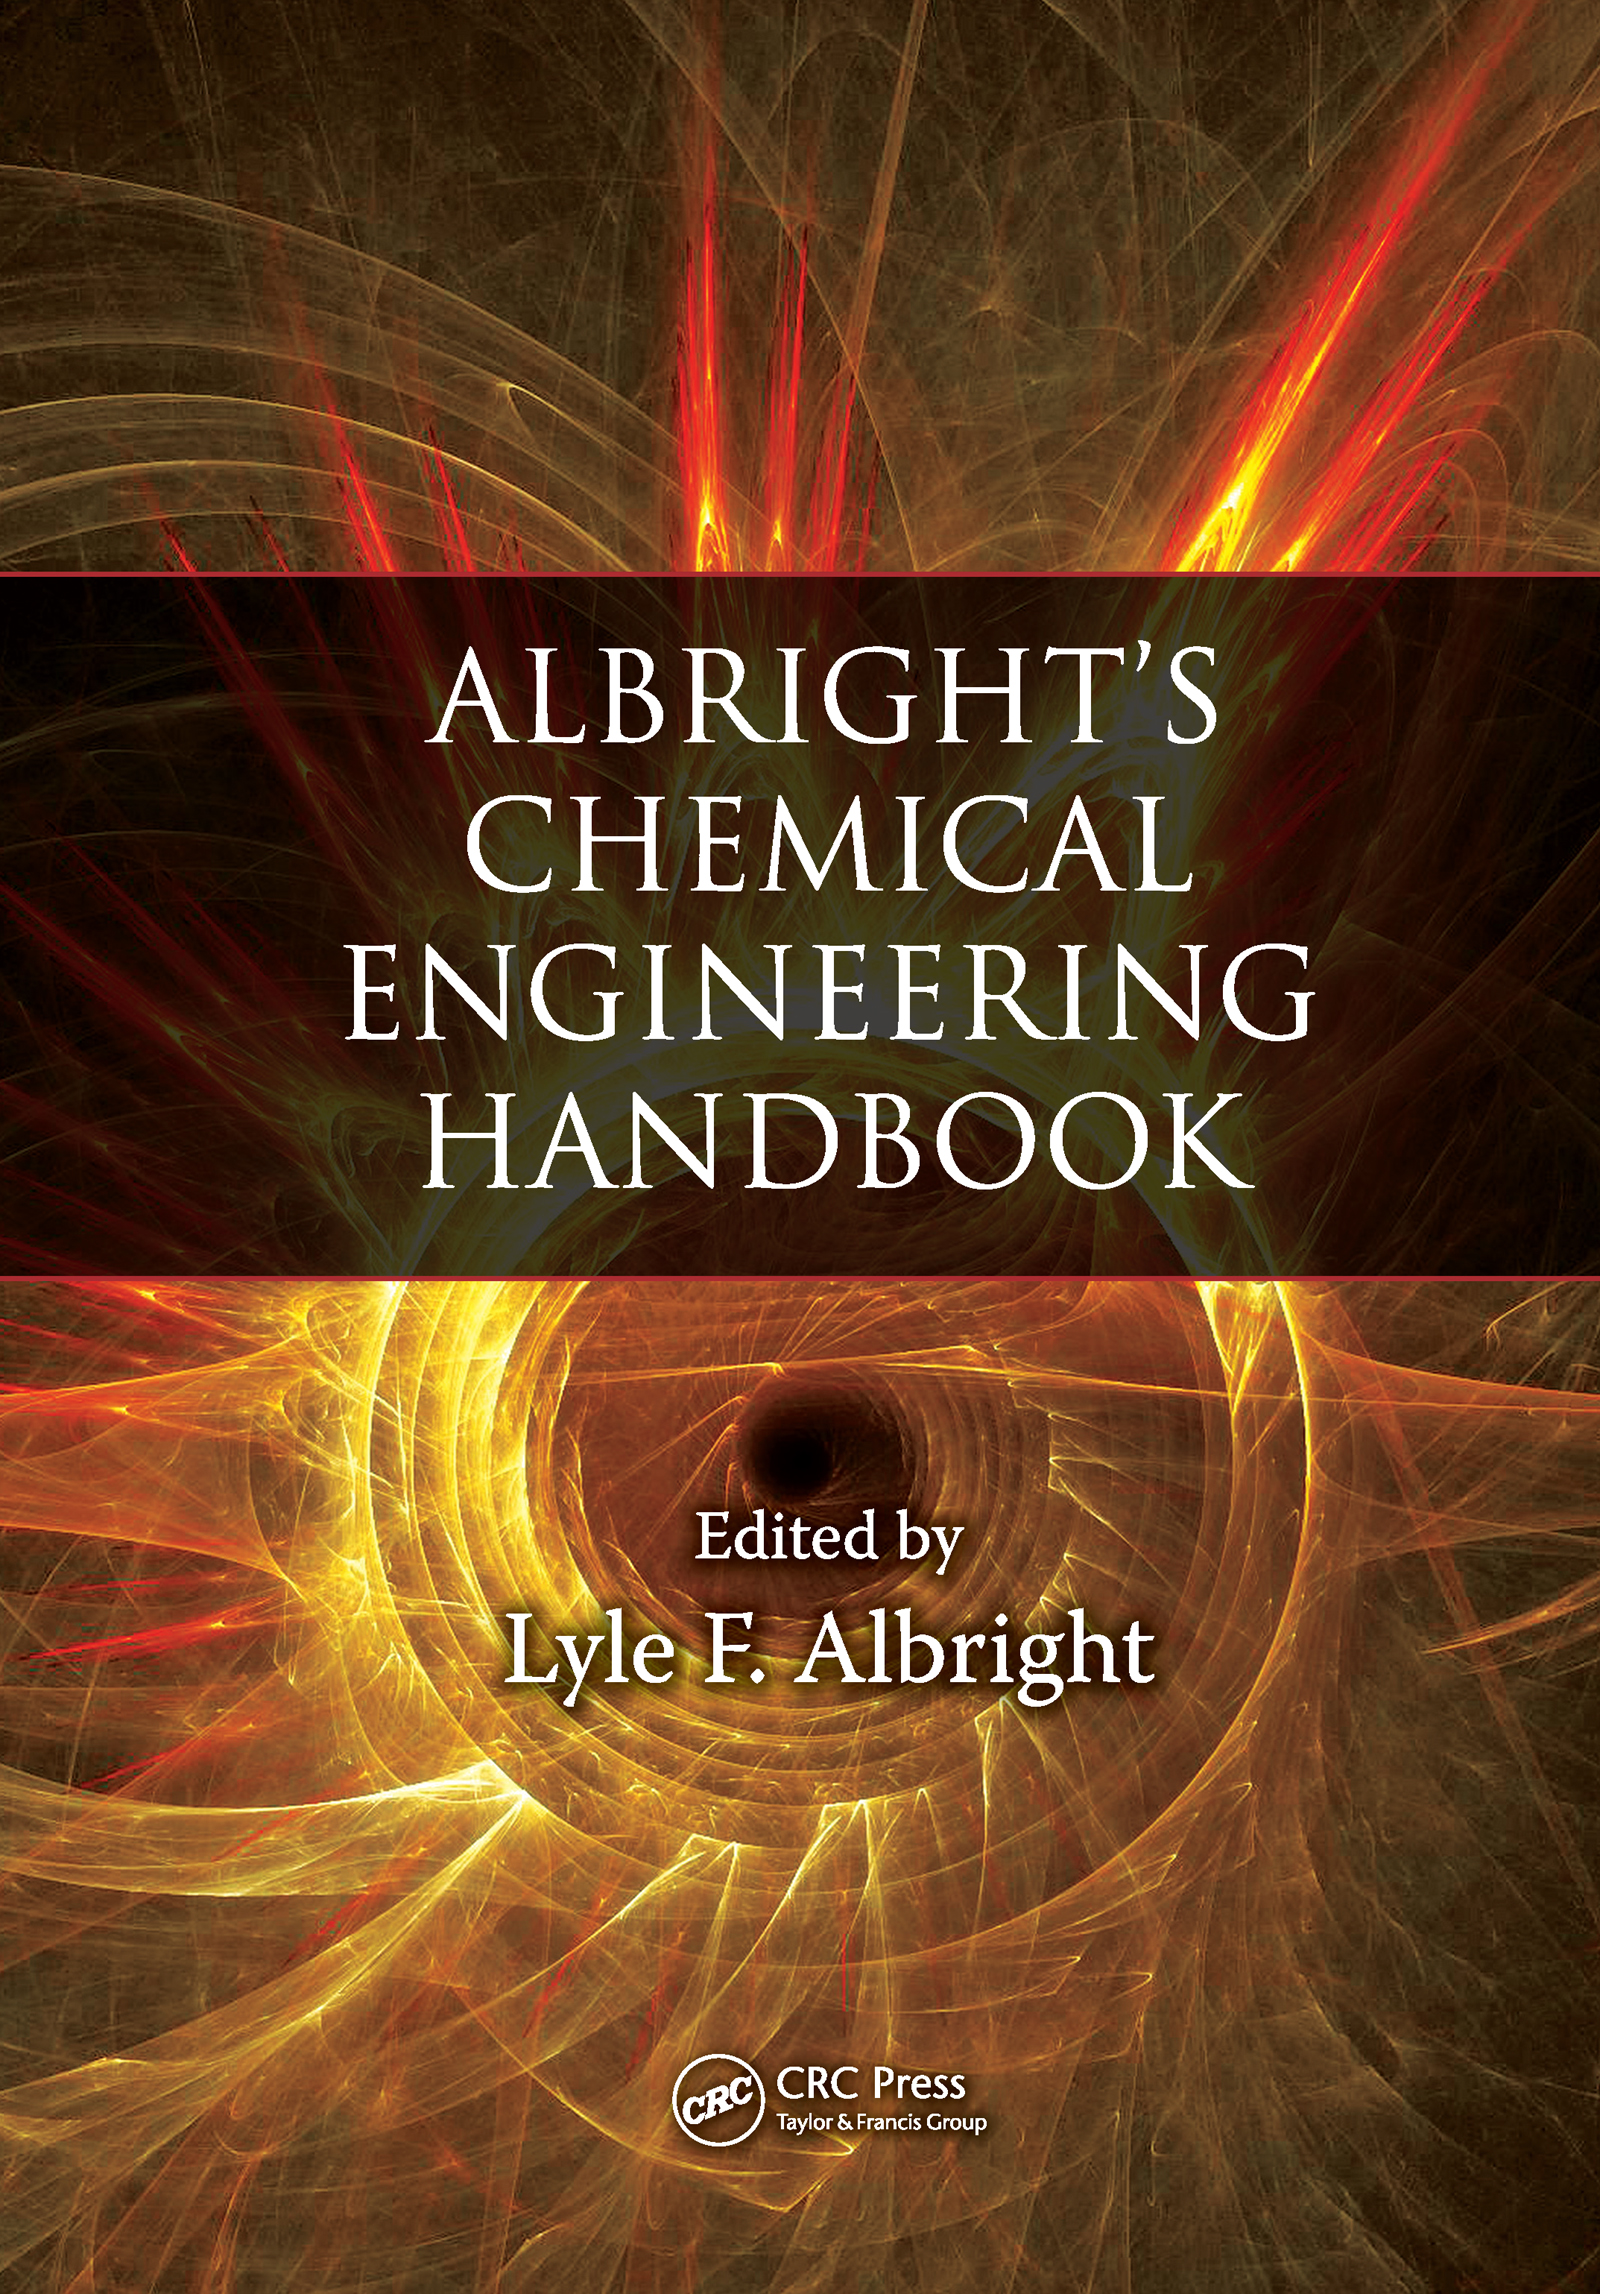 Albright's Chemical Engineering Handbook: 1st Edition (Hardback) book cover